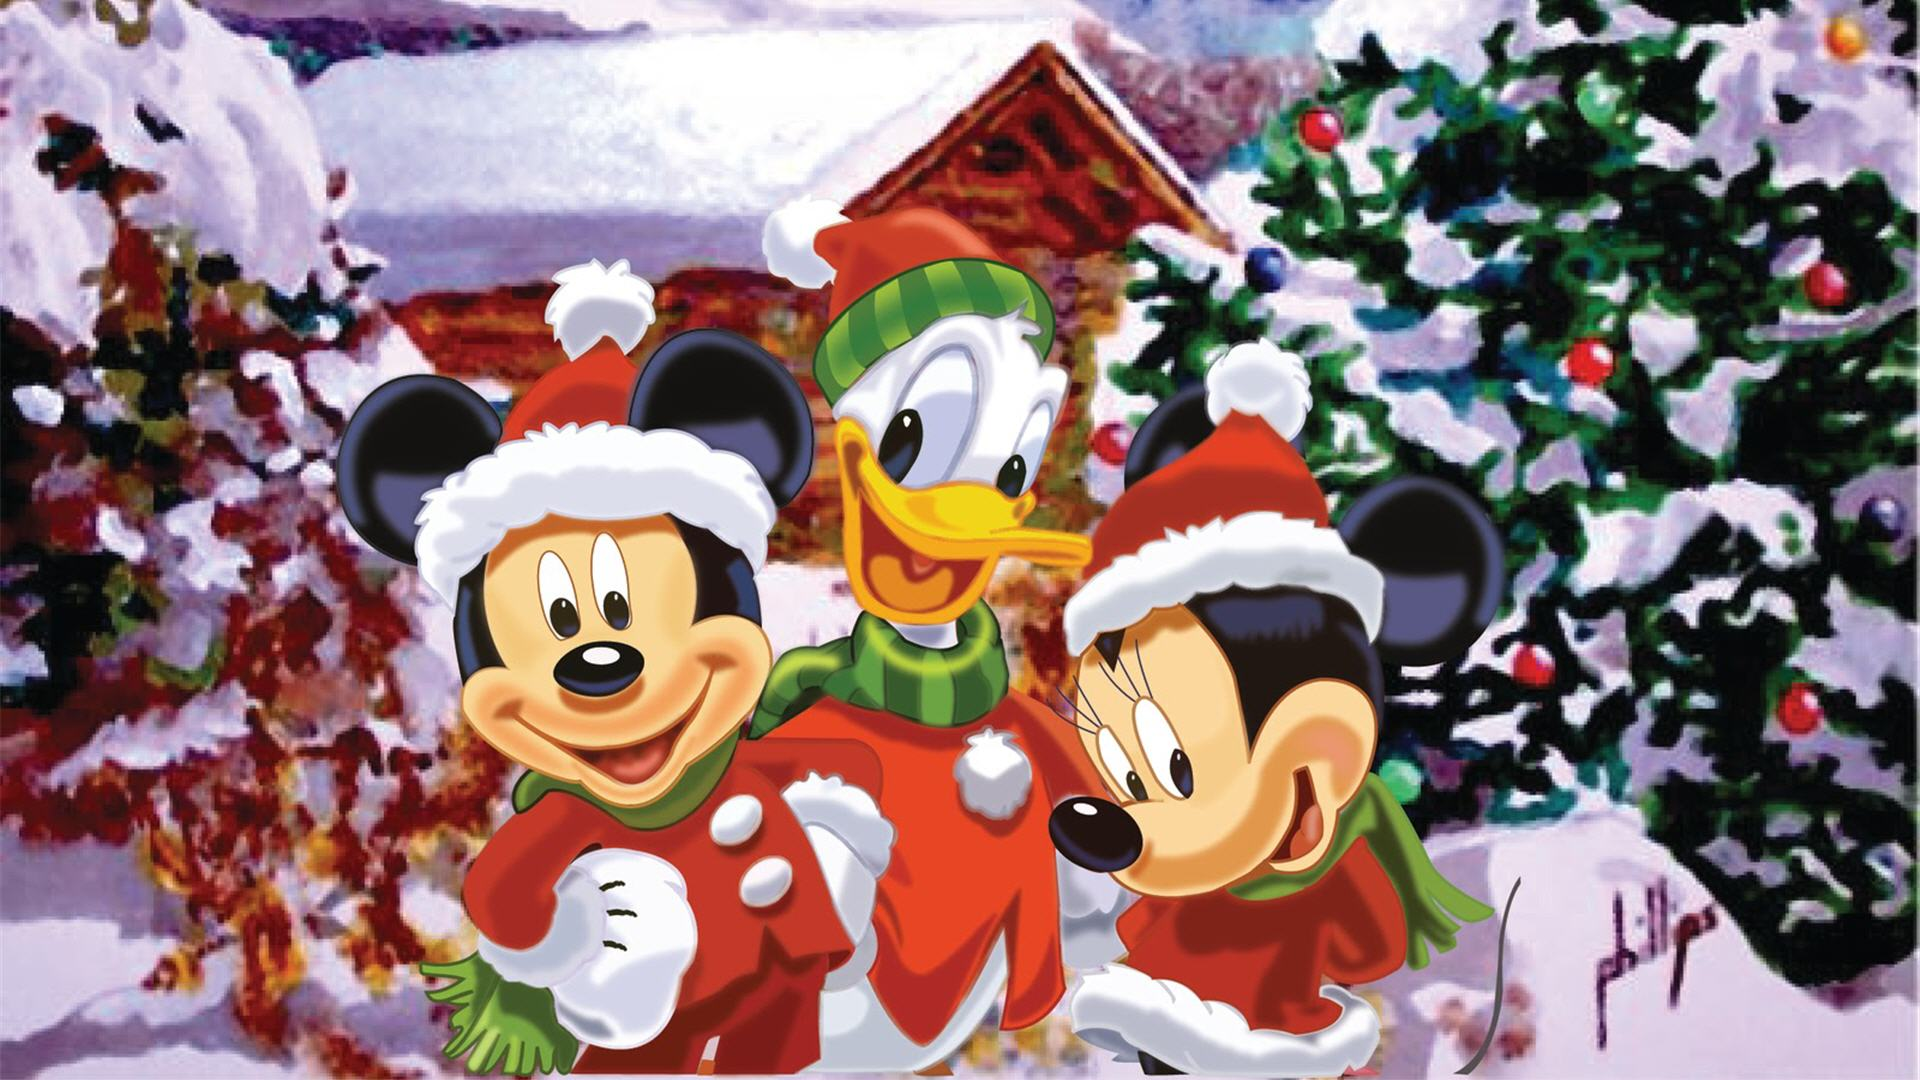 Free Animated Fall Desktop Wallpaper Mickey Mouse Mickeymousepictures Com